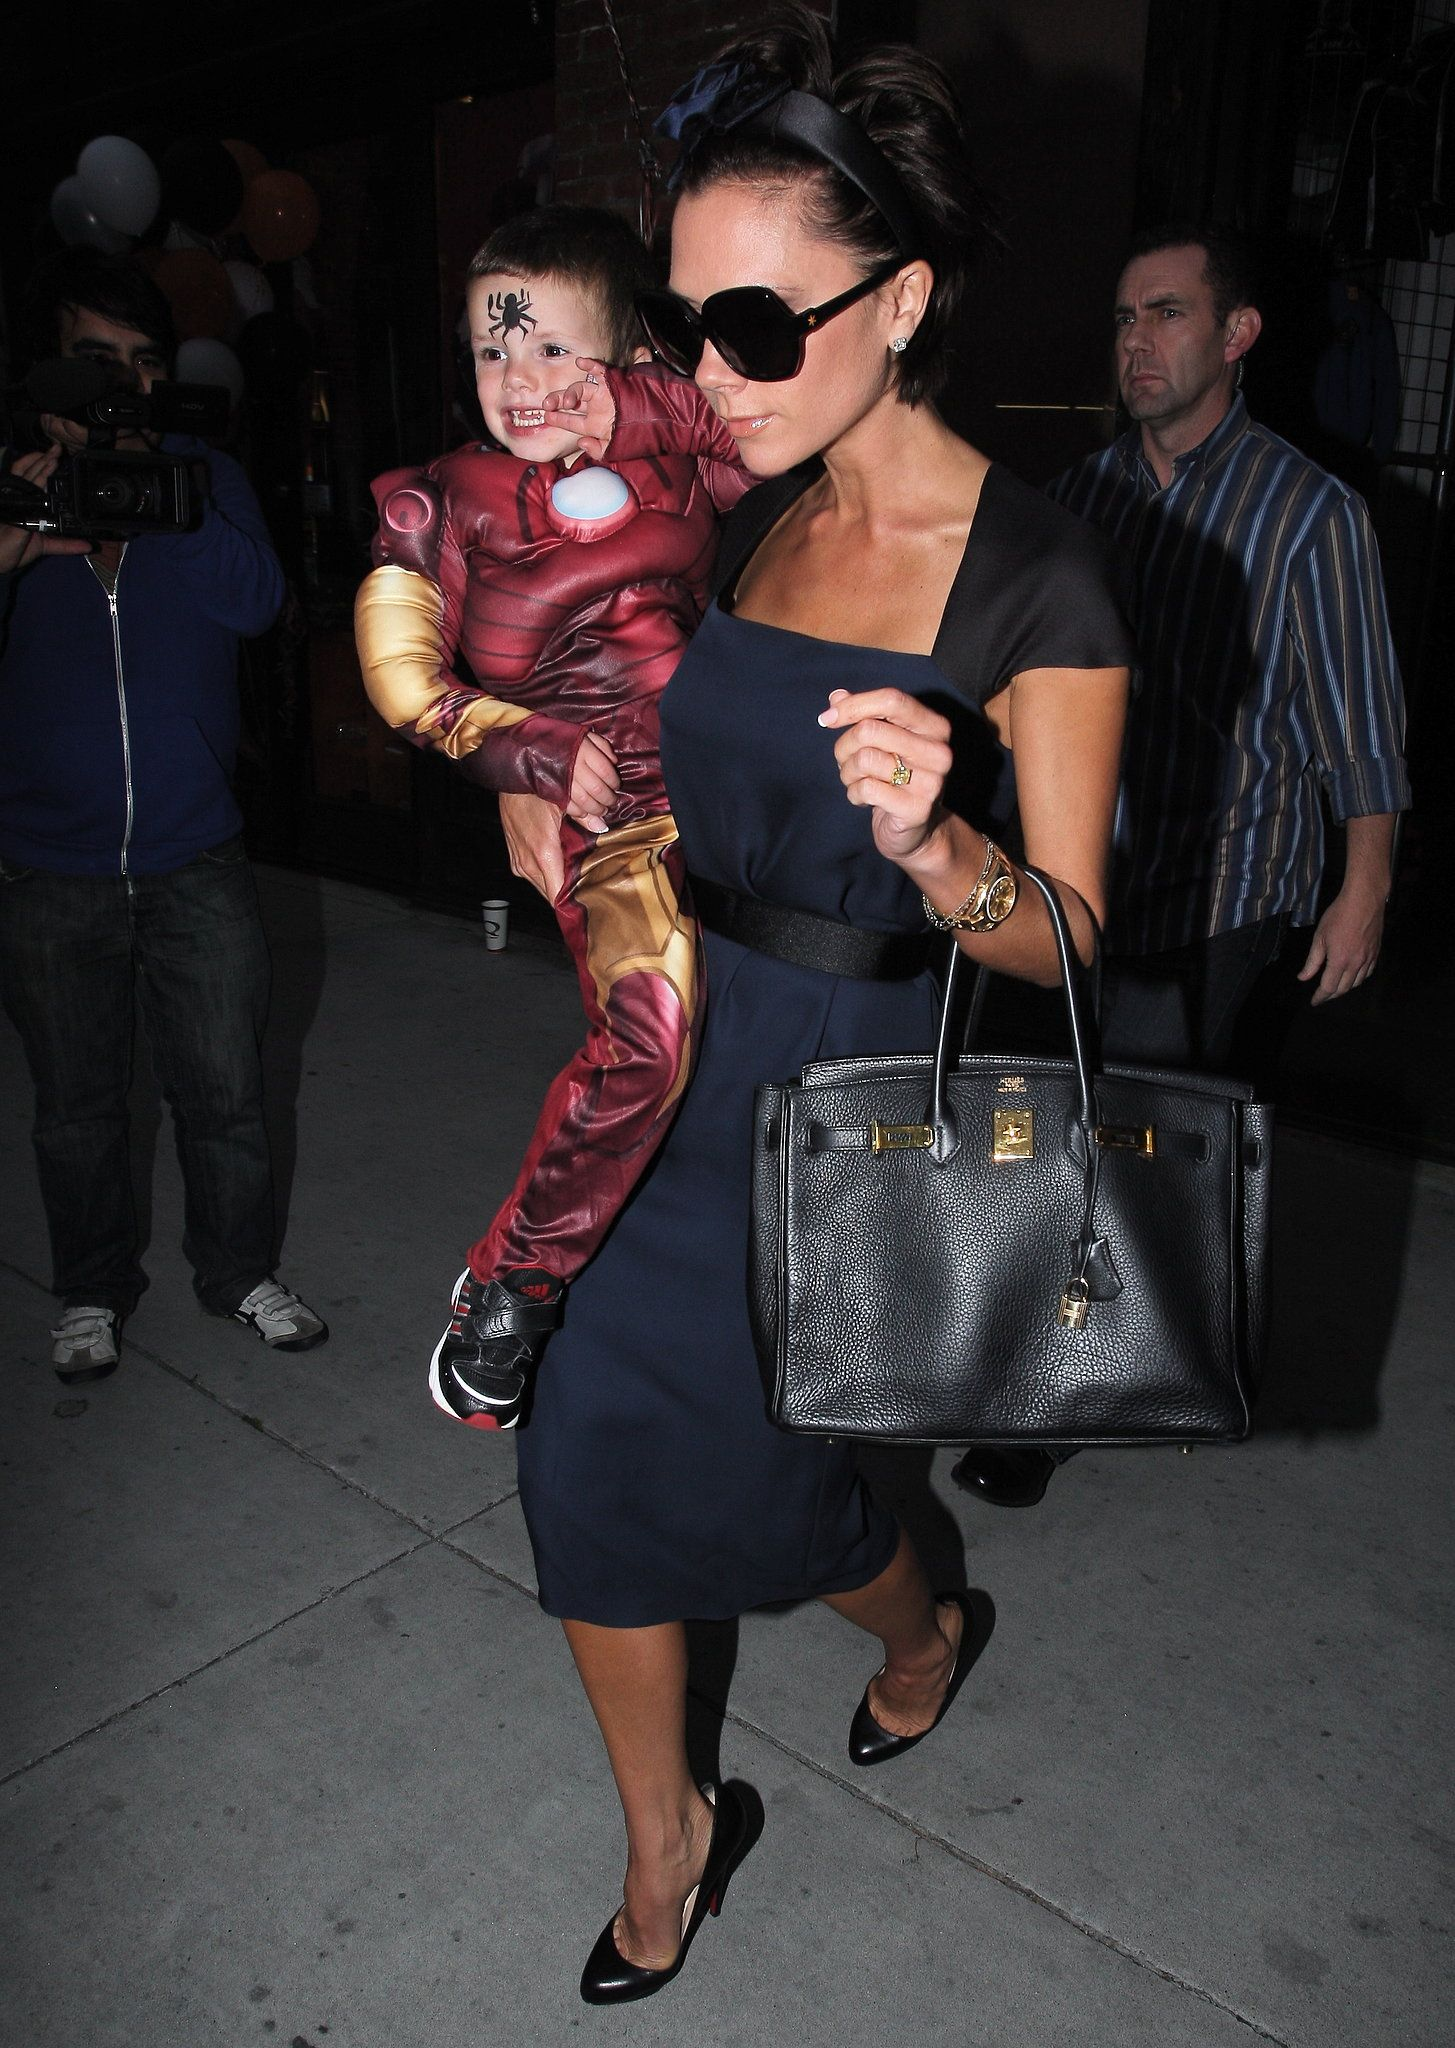 Costume-loving Cruz dressed up for his February 2009 birthday party in LA with mom Victoria Beckham.